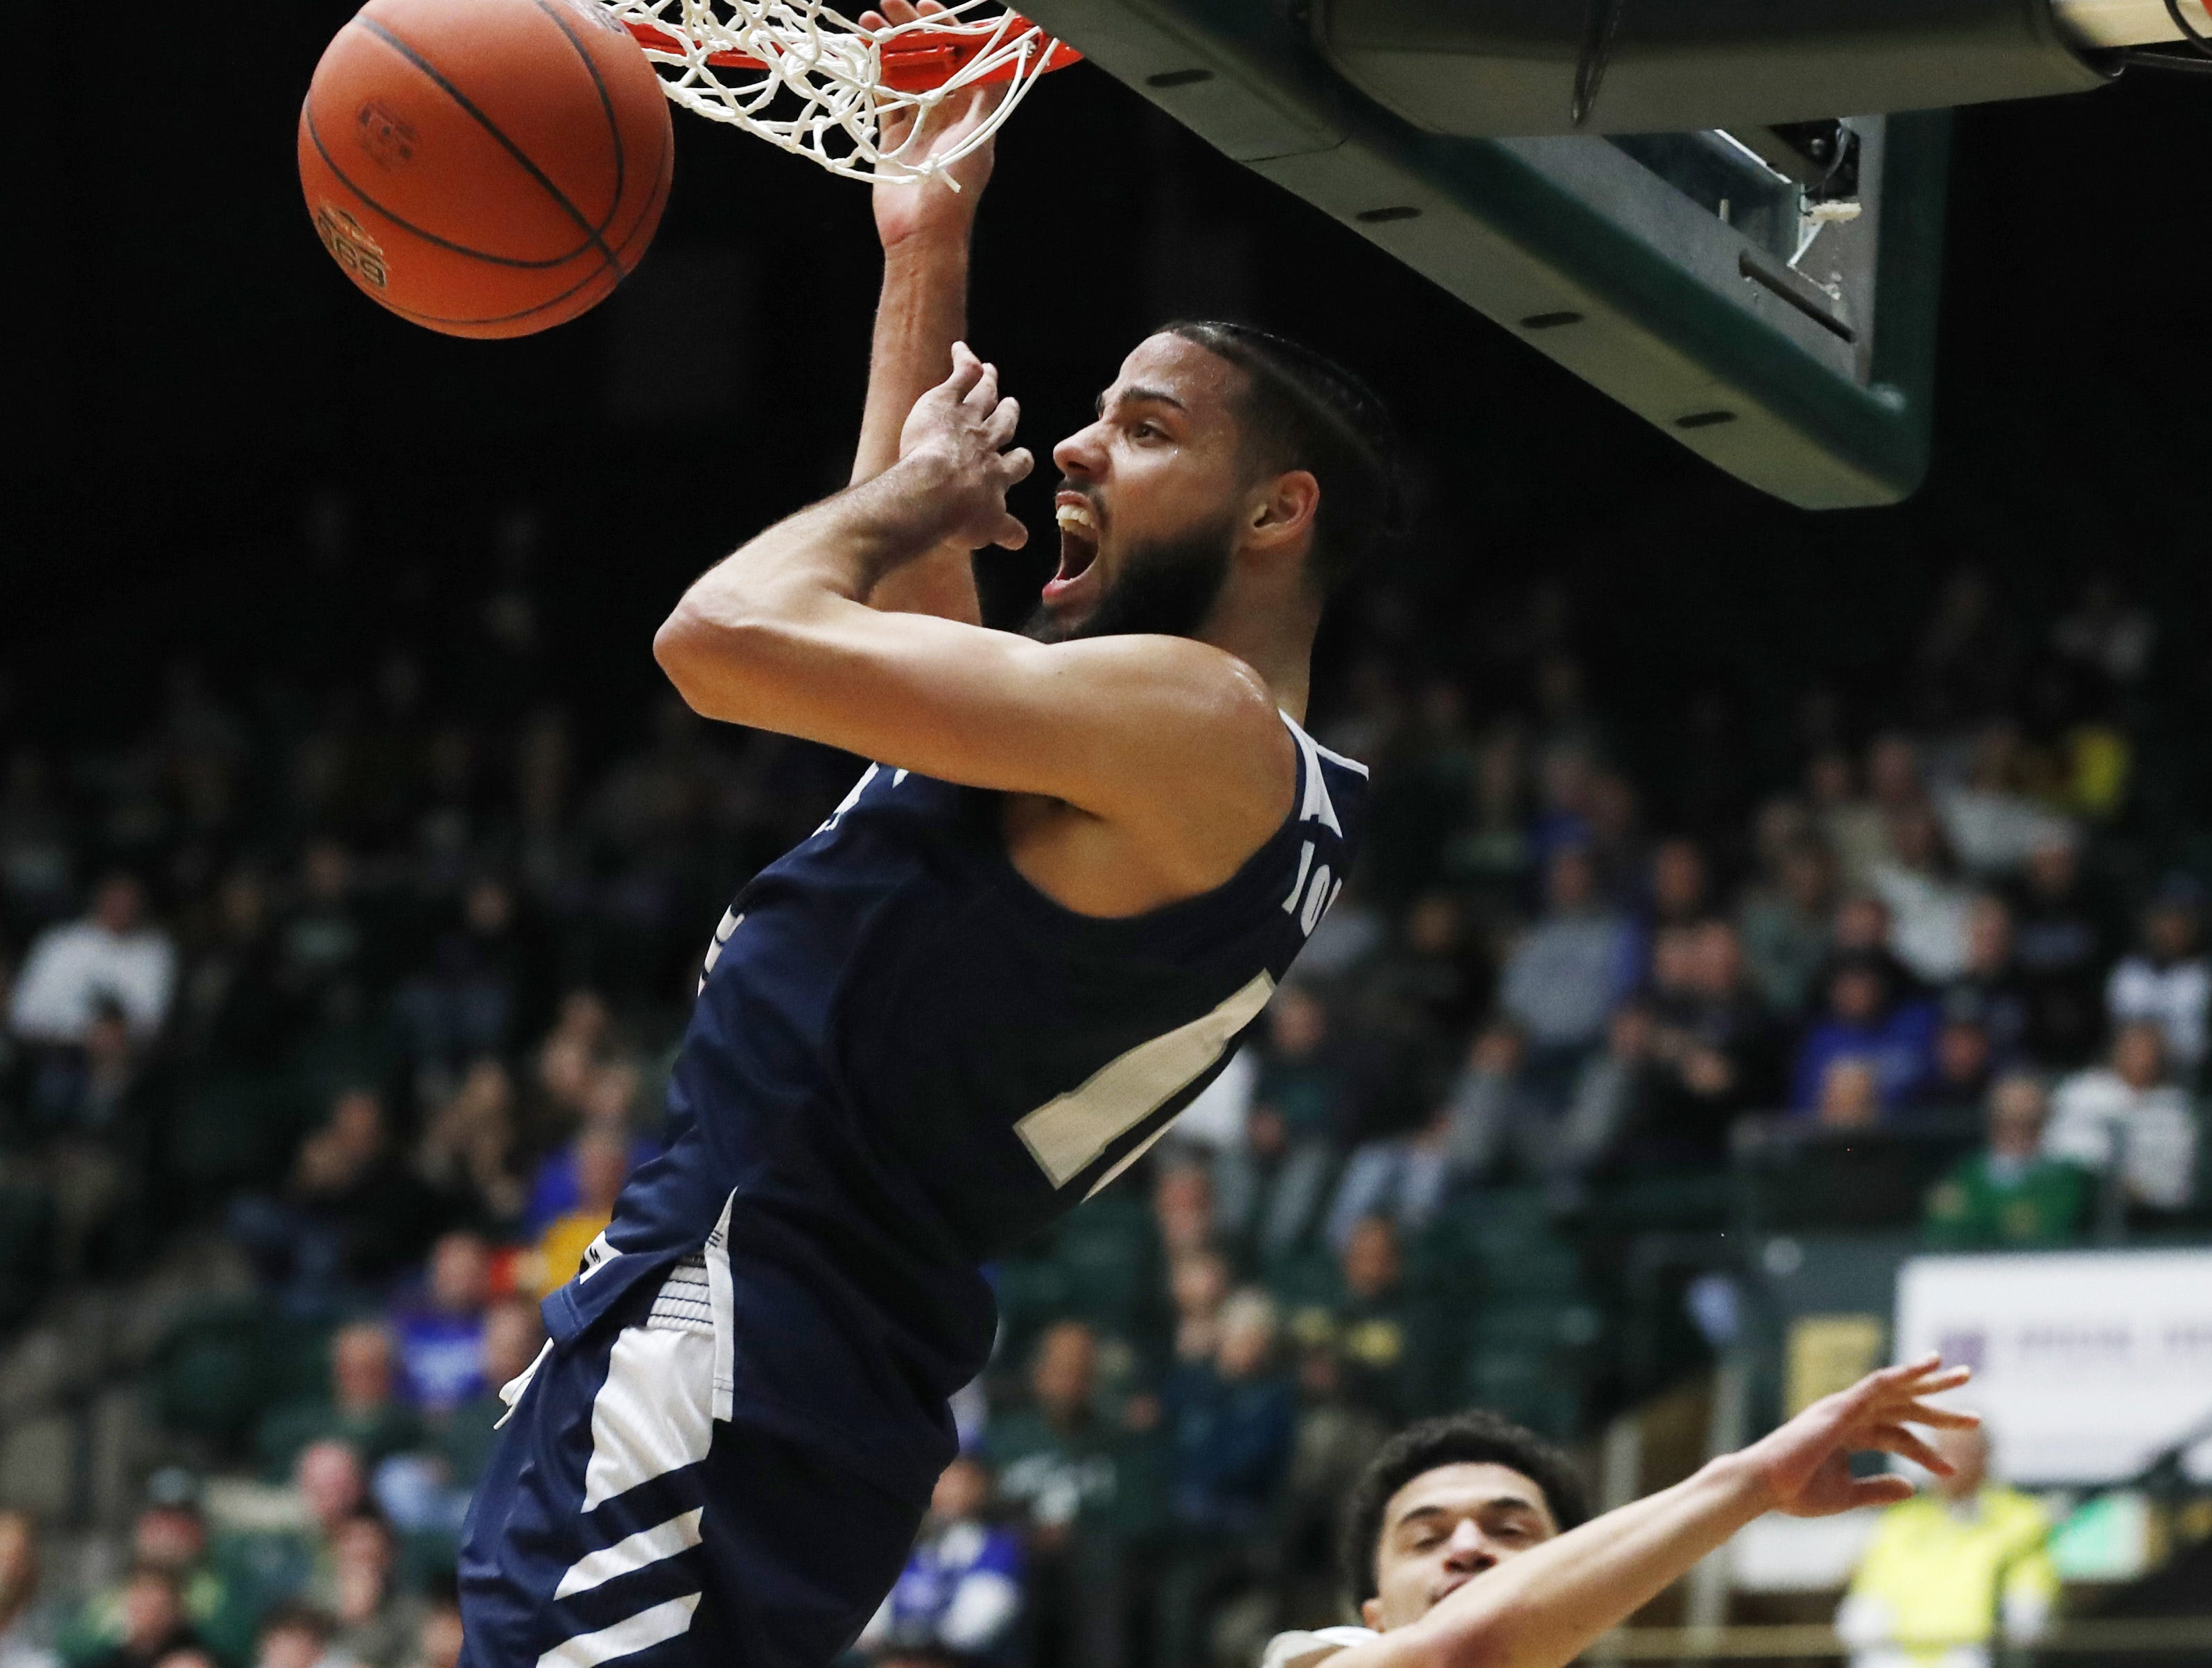 Nevada forward Caleb Martin dunks next to Colorado State guard Anthony Masinton-Bonner during the second half of an NCAA college basketball game Wednesday, Feb. 6, 2019, in Fort Collins, Colo. Nevada won 98-82.